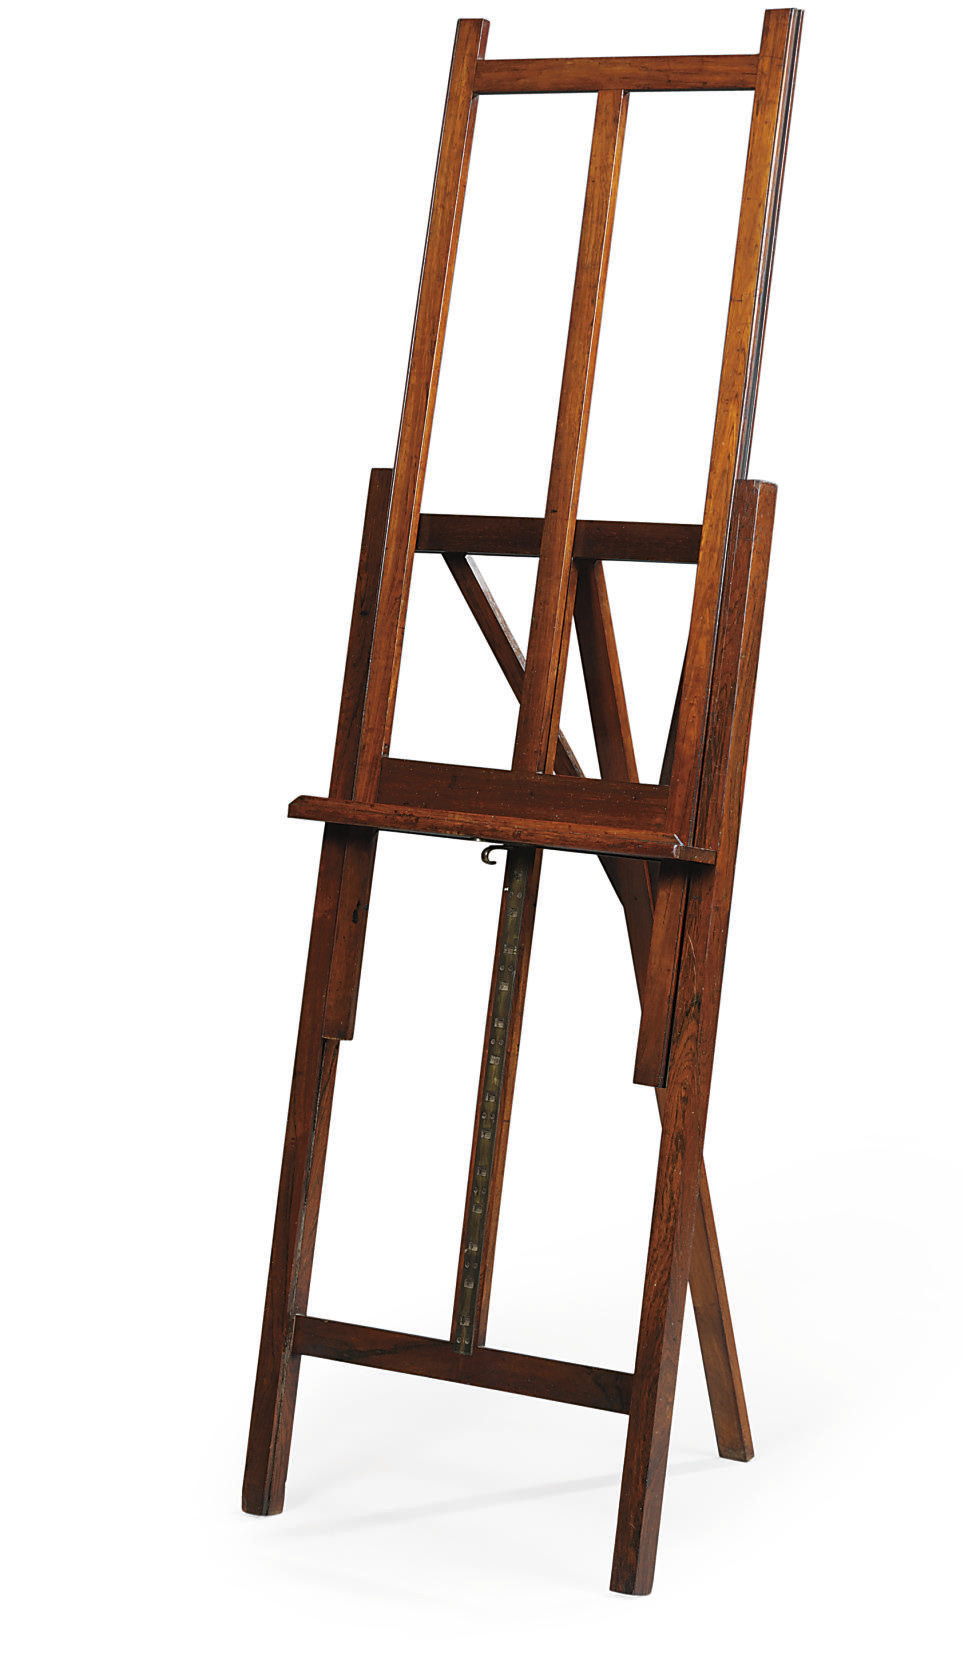 A LATE VICTORIAN ROSEWOOD PICTURE-EASEL